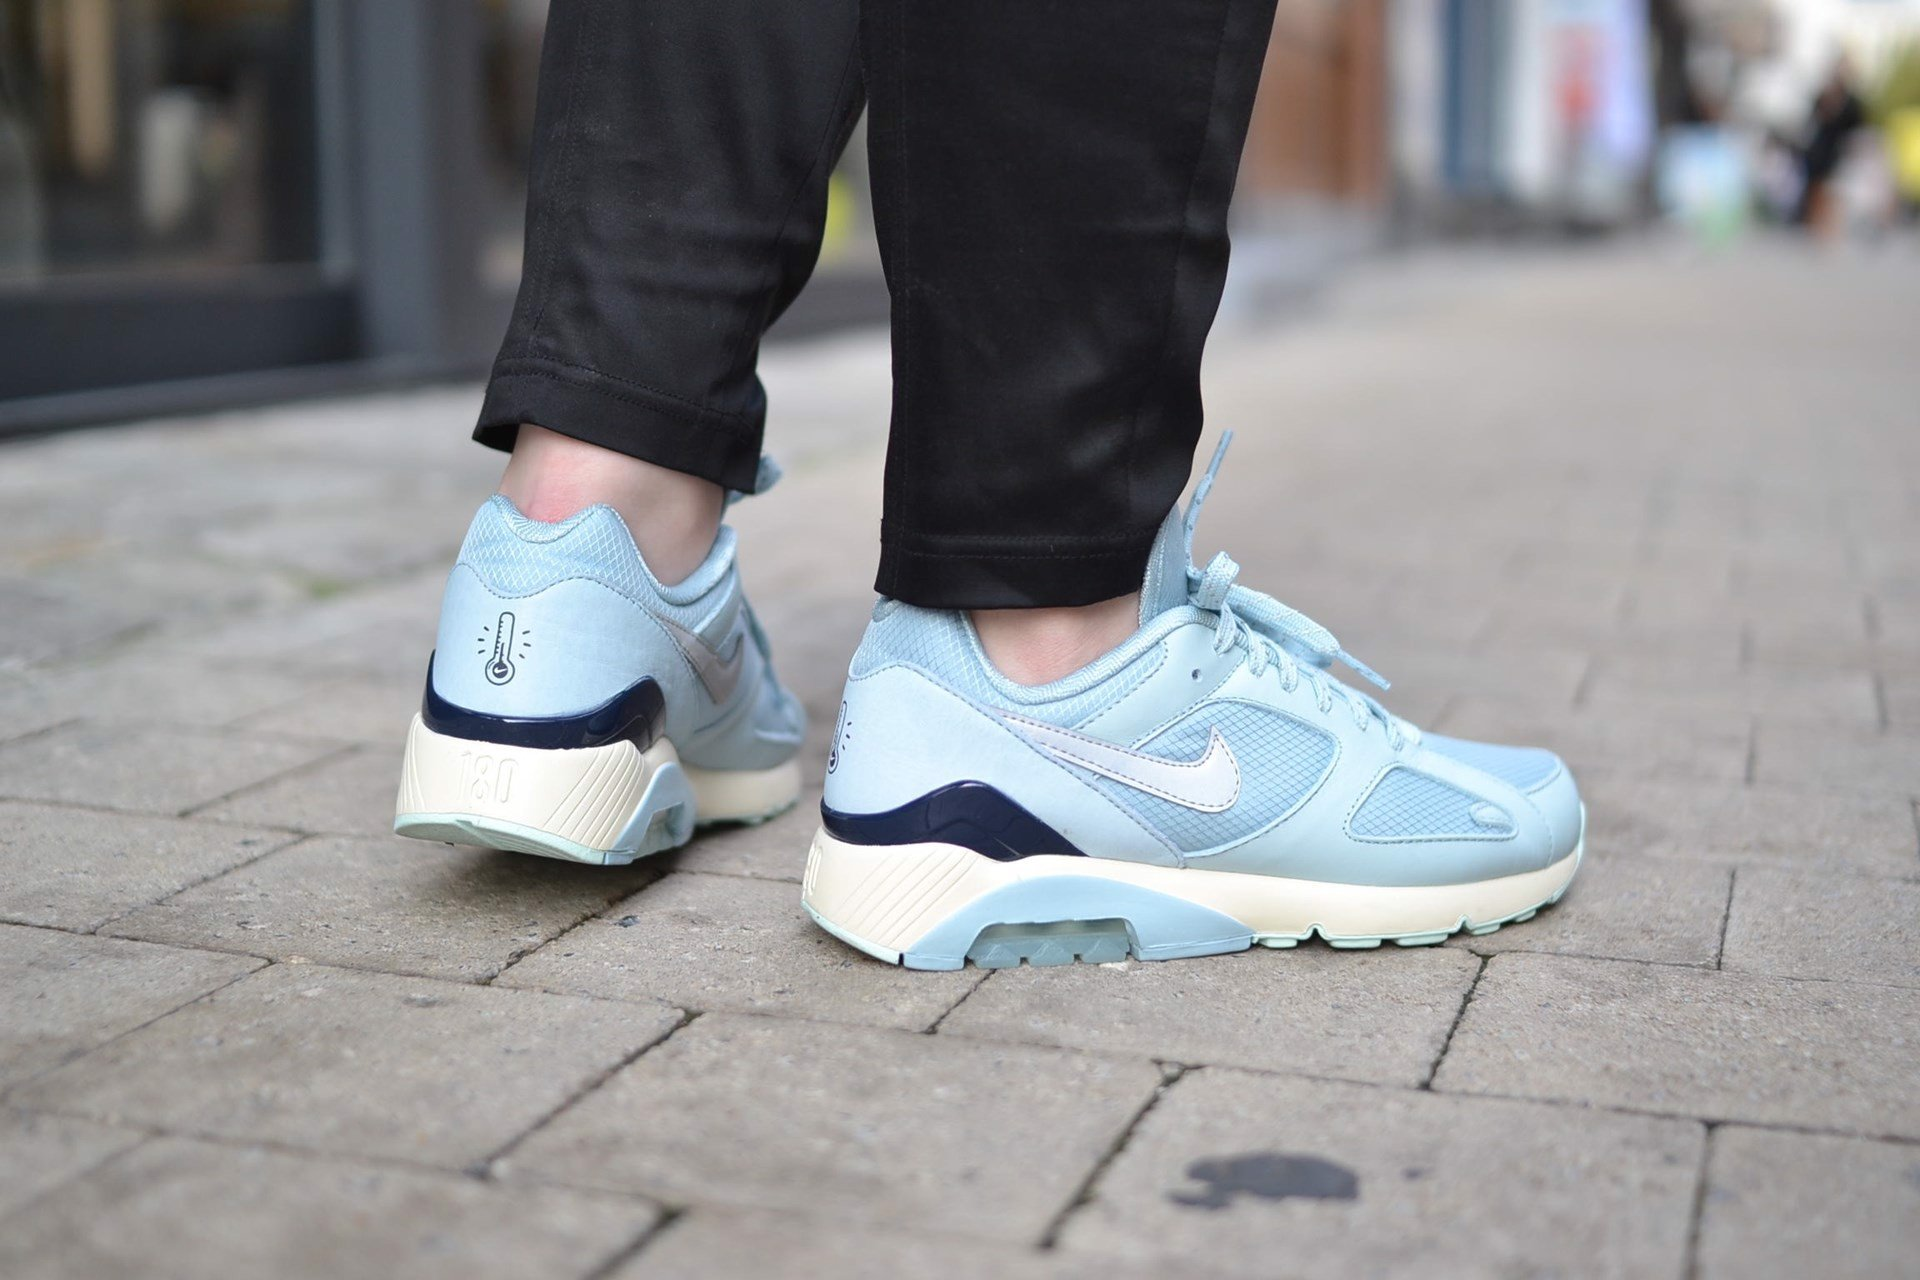 Nike Air Max 180 'Black & Ocean Pack' ICE AV3734-400